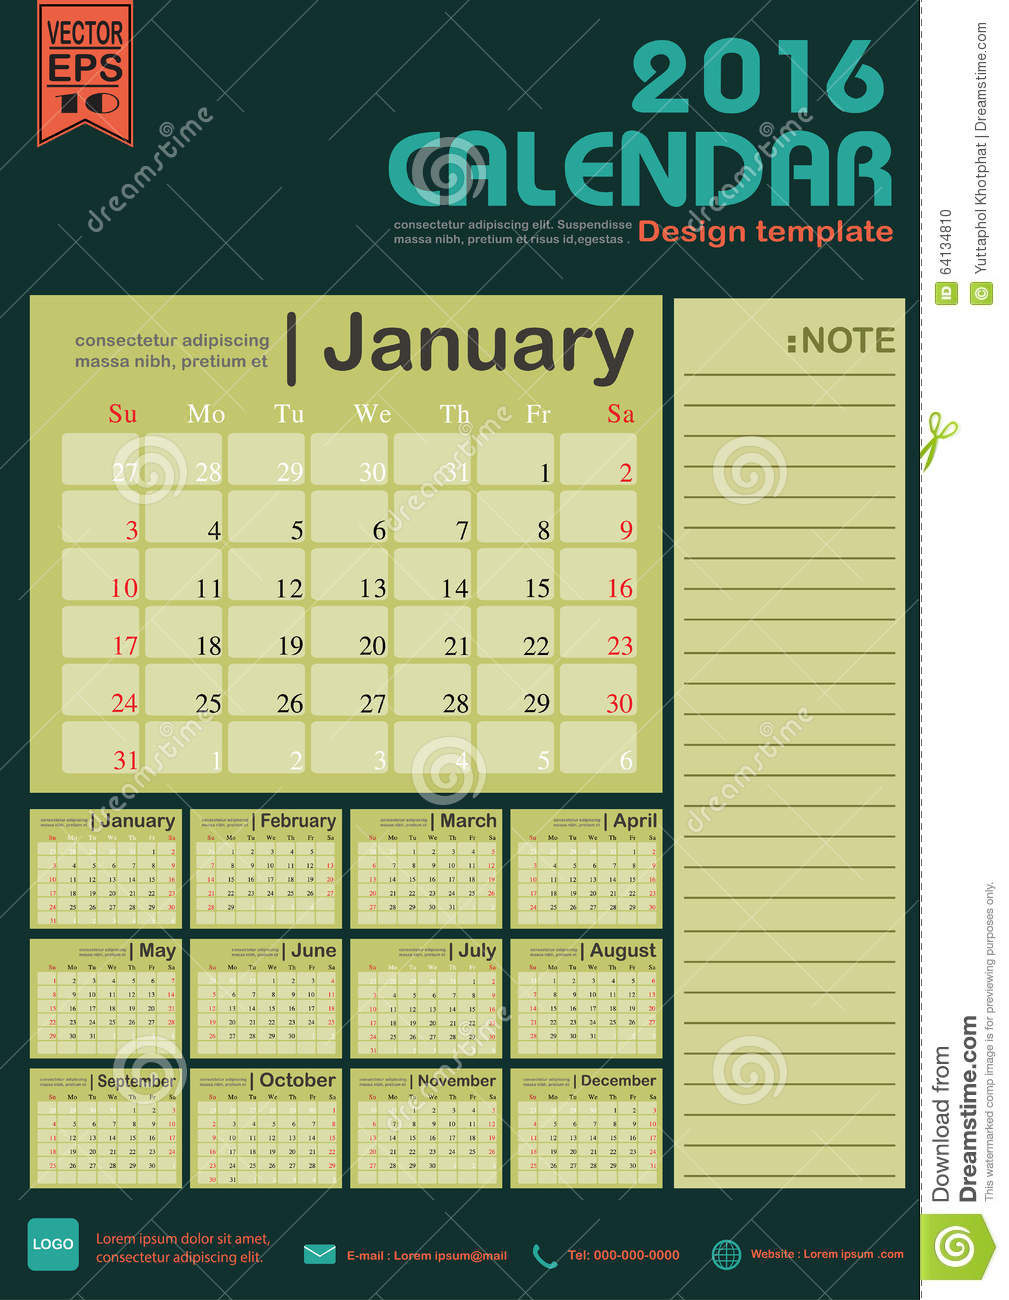 Calendar Green : Calendar green color tone background design template